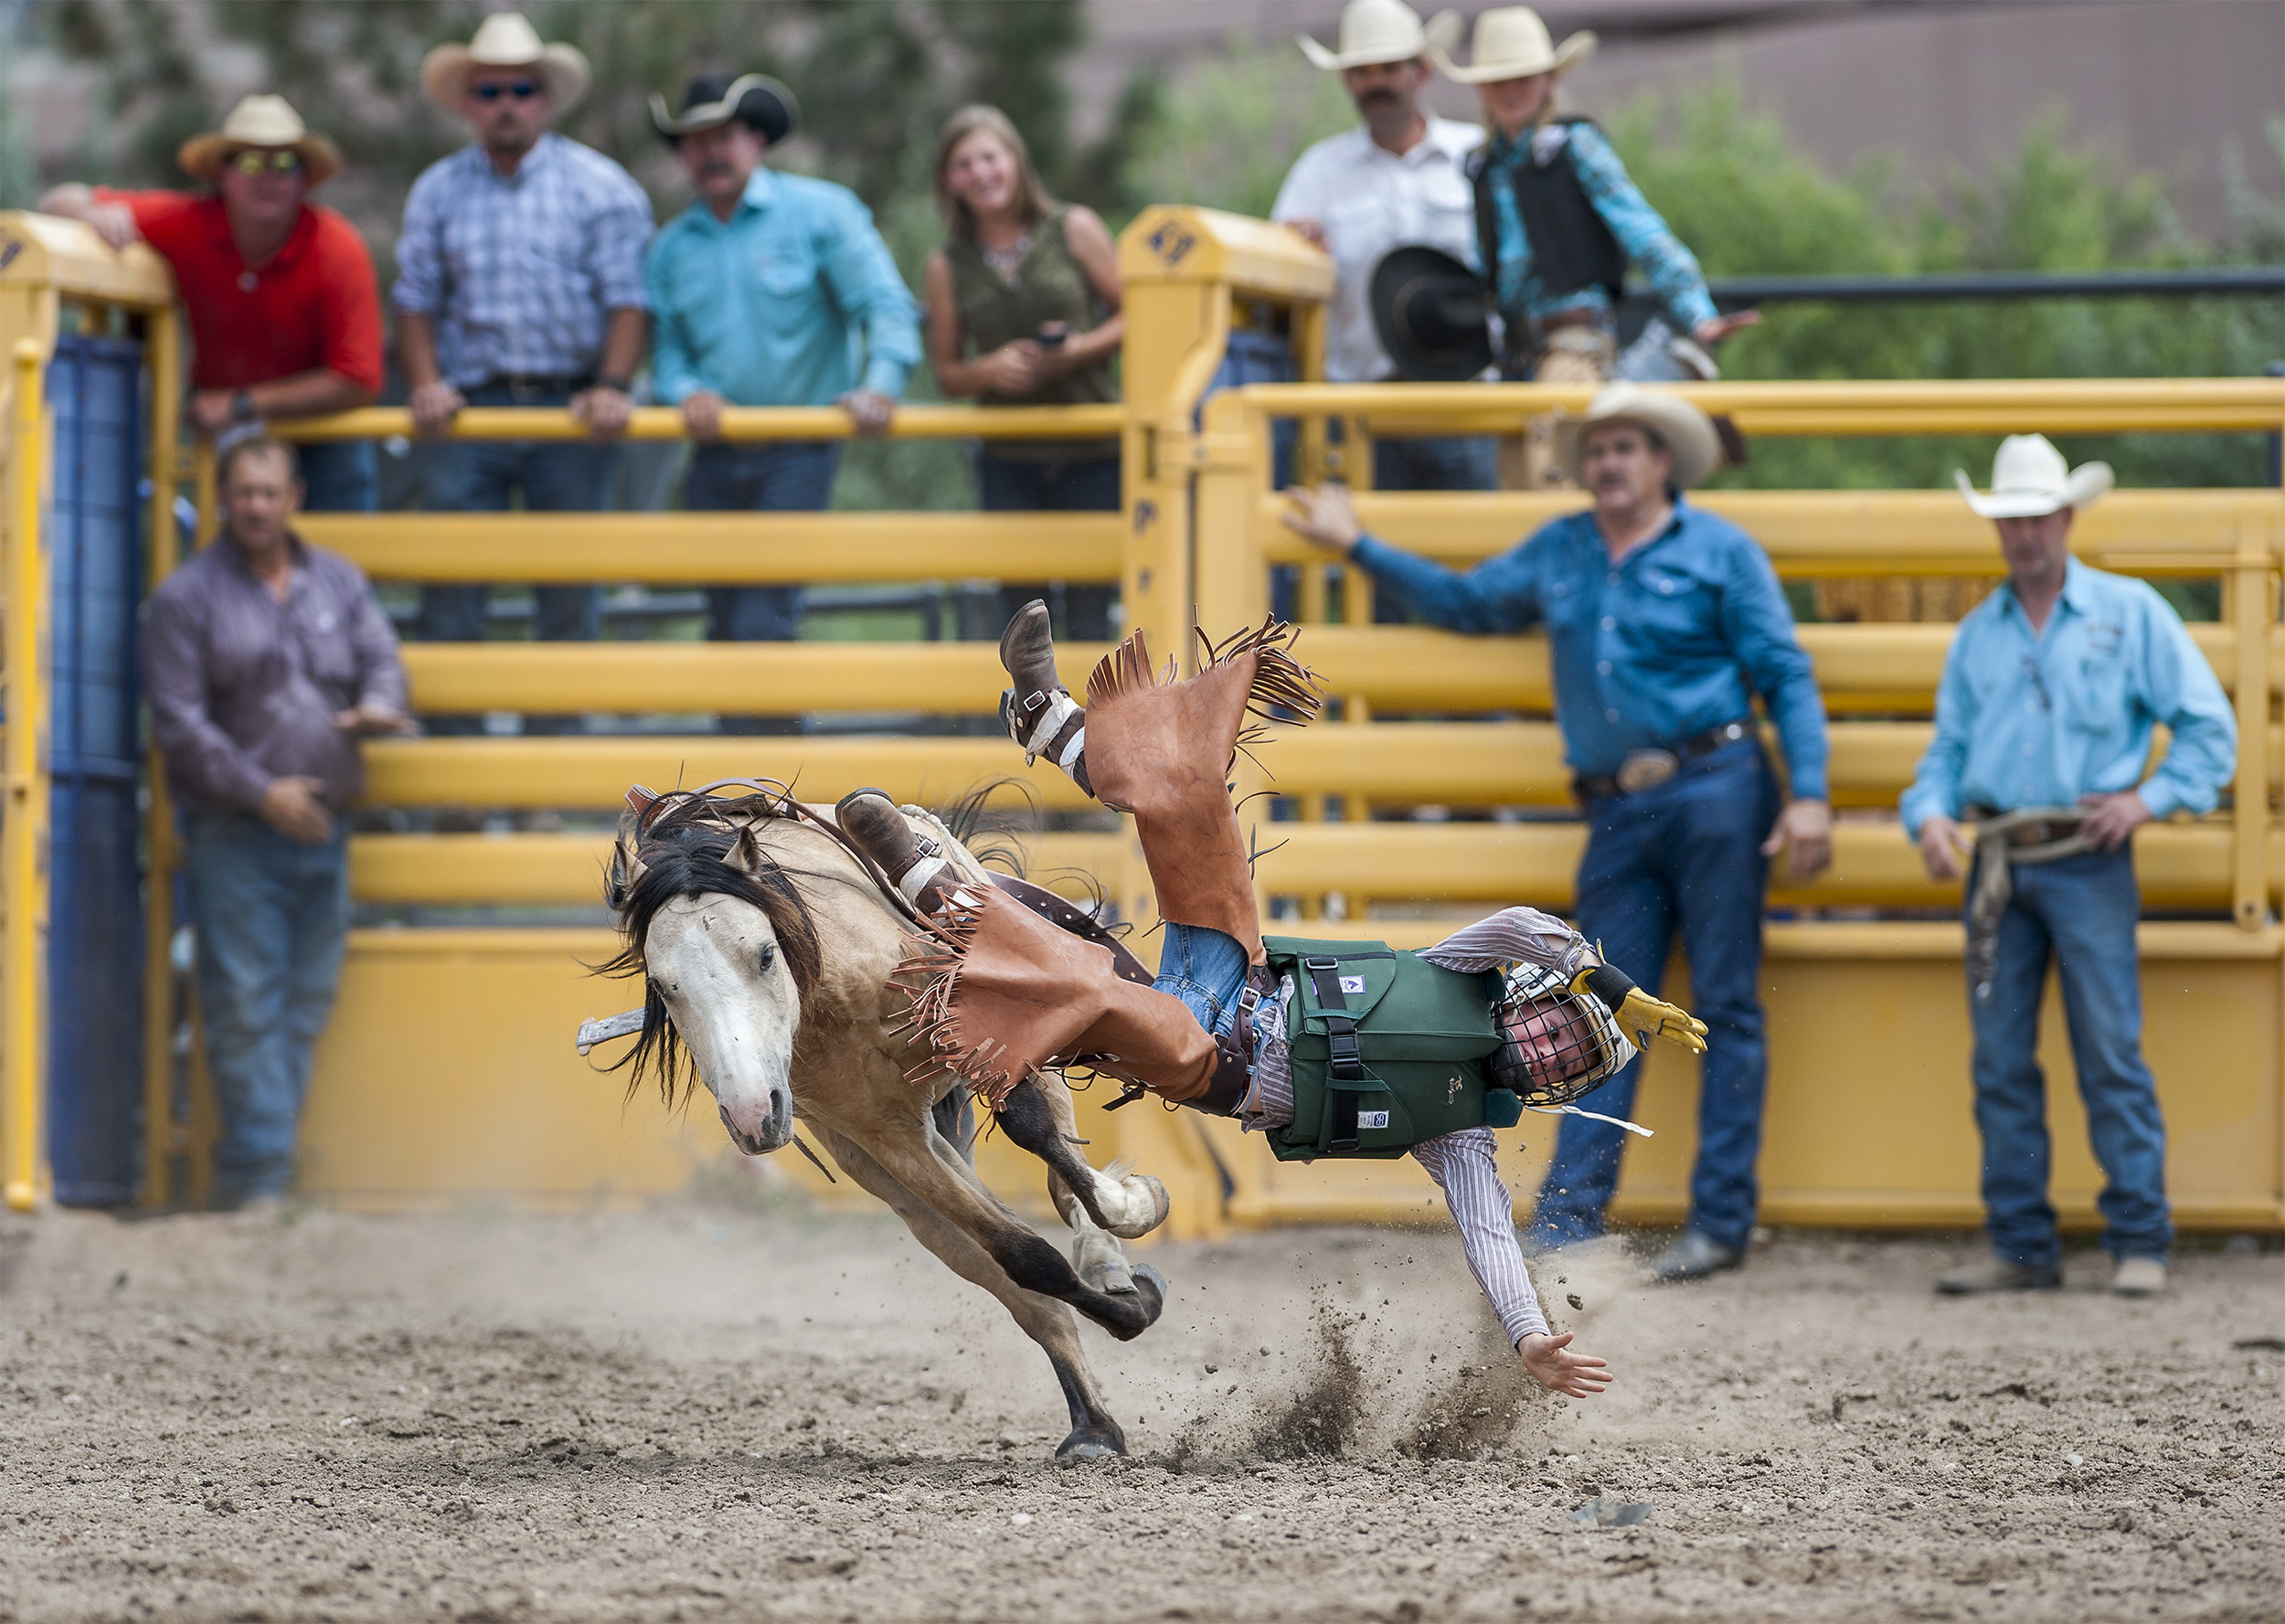 Triston Day, 8, of Hayden, Colorado, is bucked off his horse during the Mini Bareback Riding World Championship Semifinals held for the first time at the ProRodeo Hall of Fame arena in Colorado Springs, Colorado. Twenty of the best - and youngest - regional competitors put their bucking skills to the test for the chance to advance to the World Championships in Las Vegas in December.